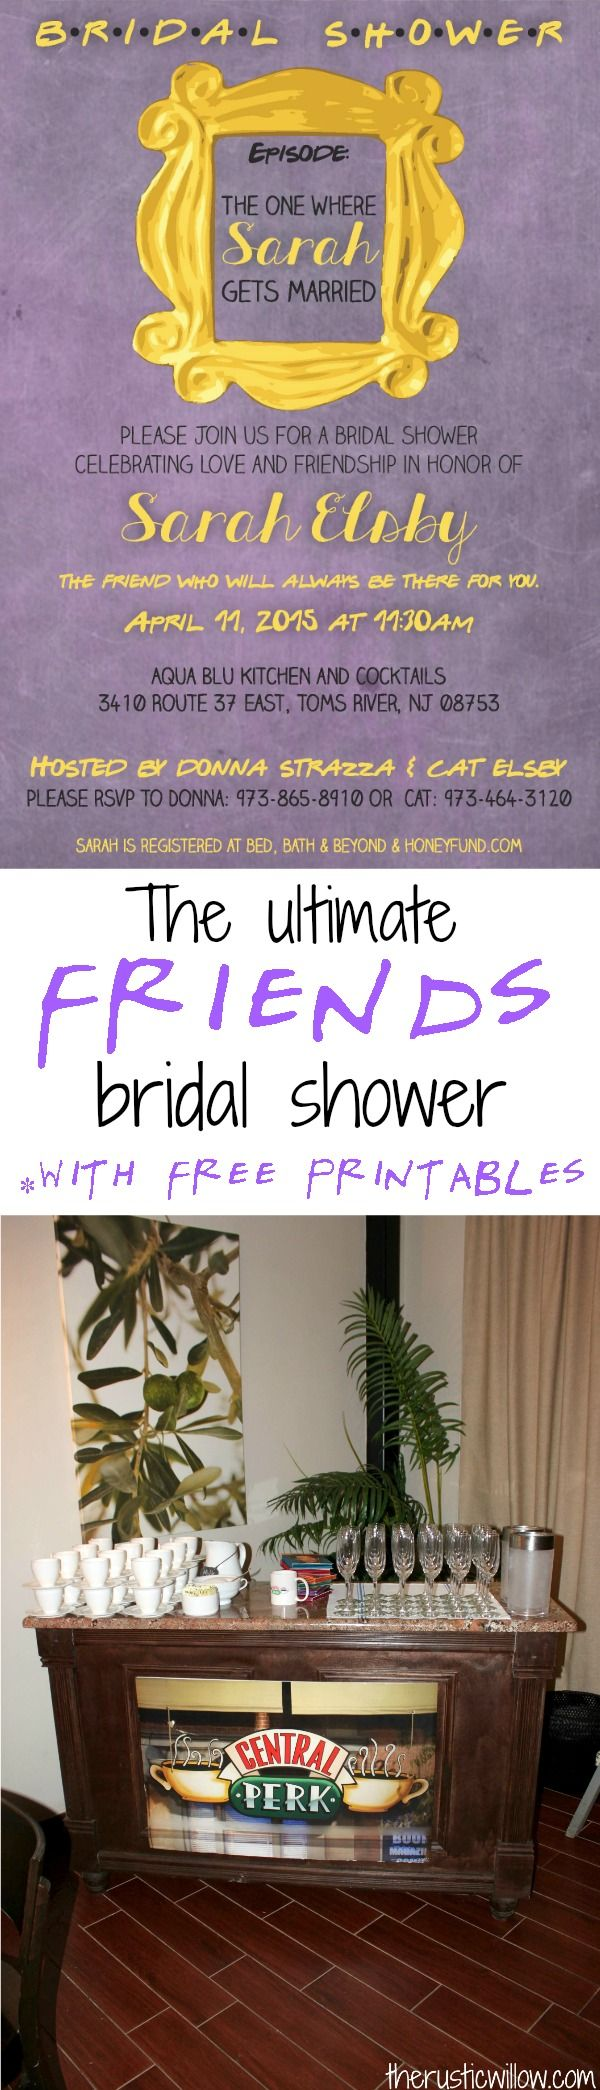 game for bridal shower free%0A The ultimate Friends Tv Show Bridal shower with free printables  games and  favor ideas